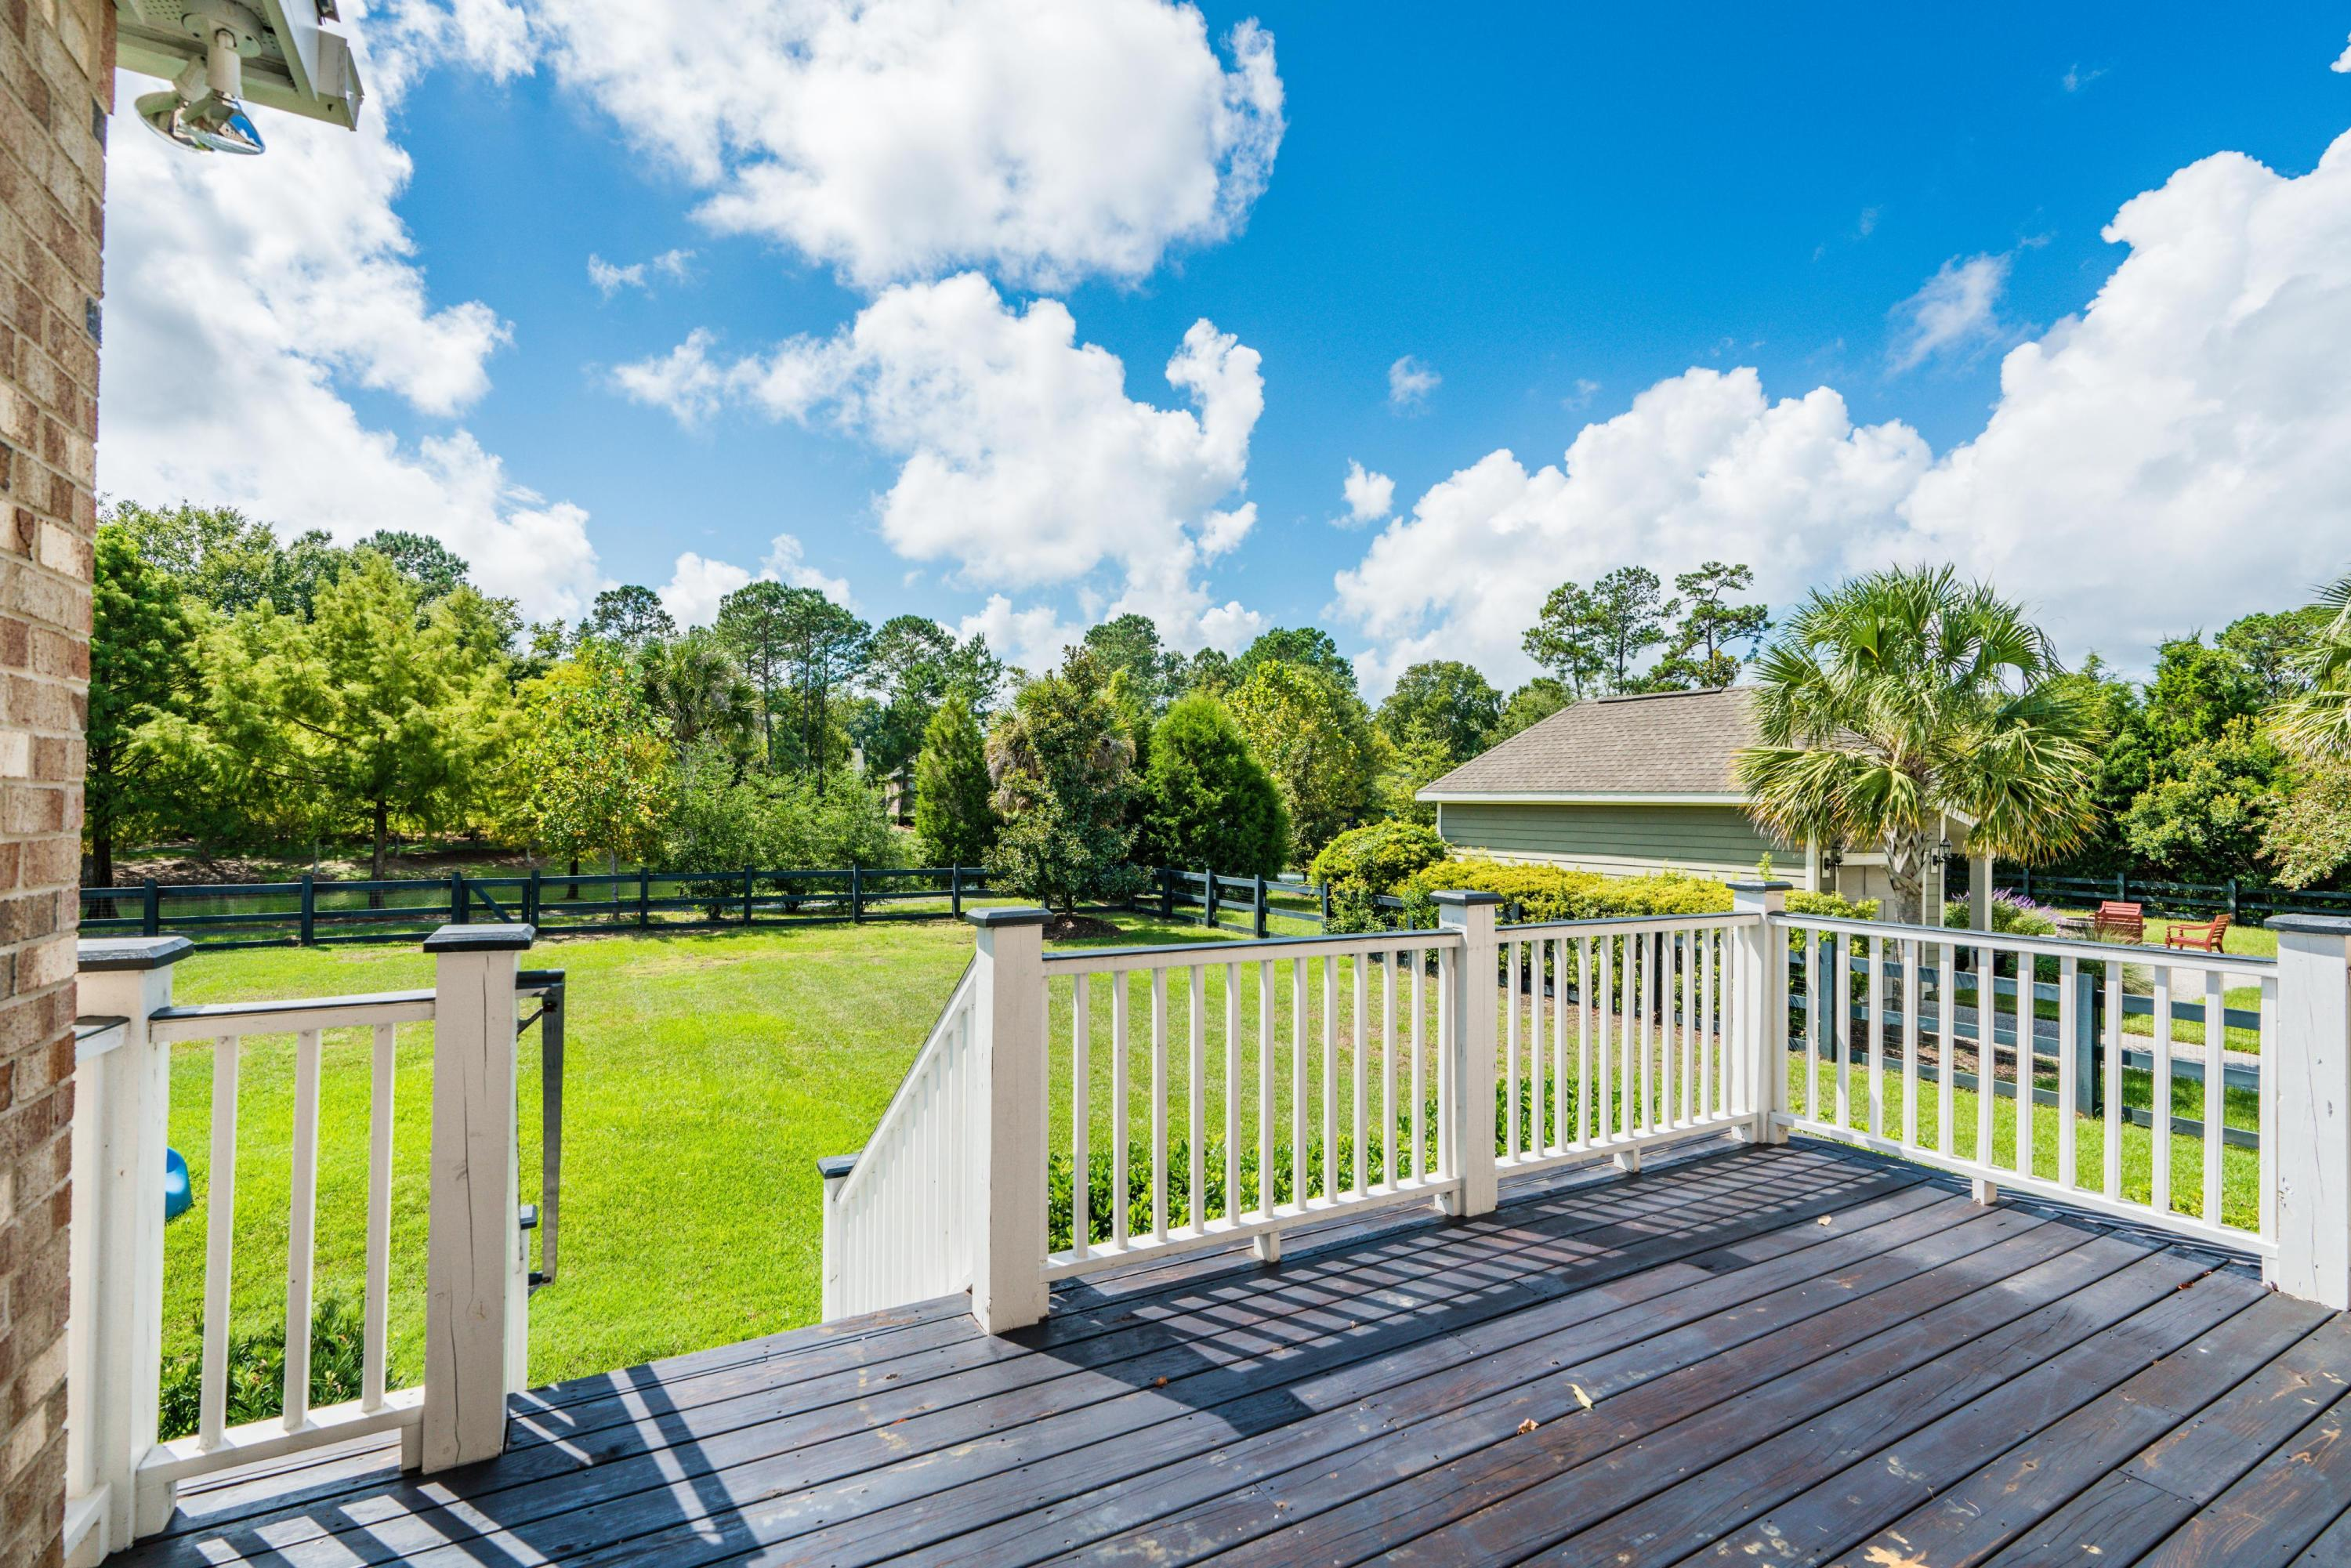 Scotts Creek Homes For Sale - 1448 Scotts Creek, Mount Pleasant, SC - 0